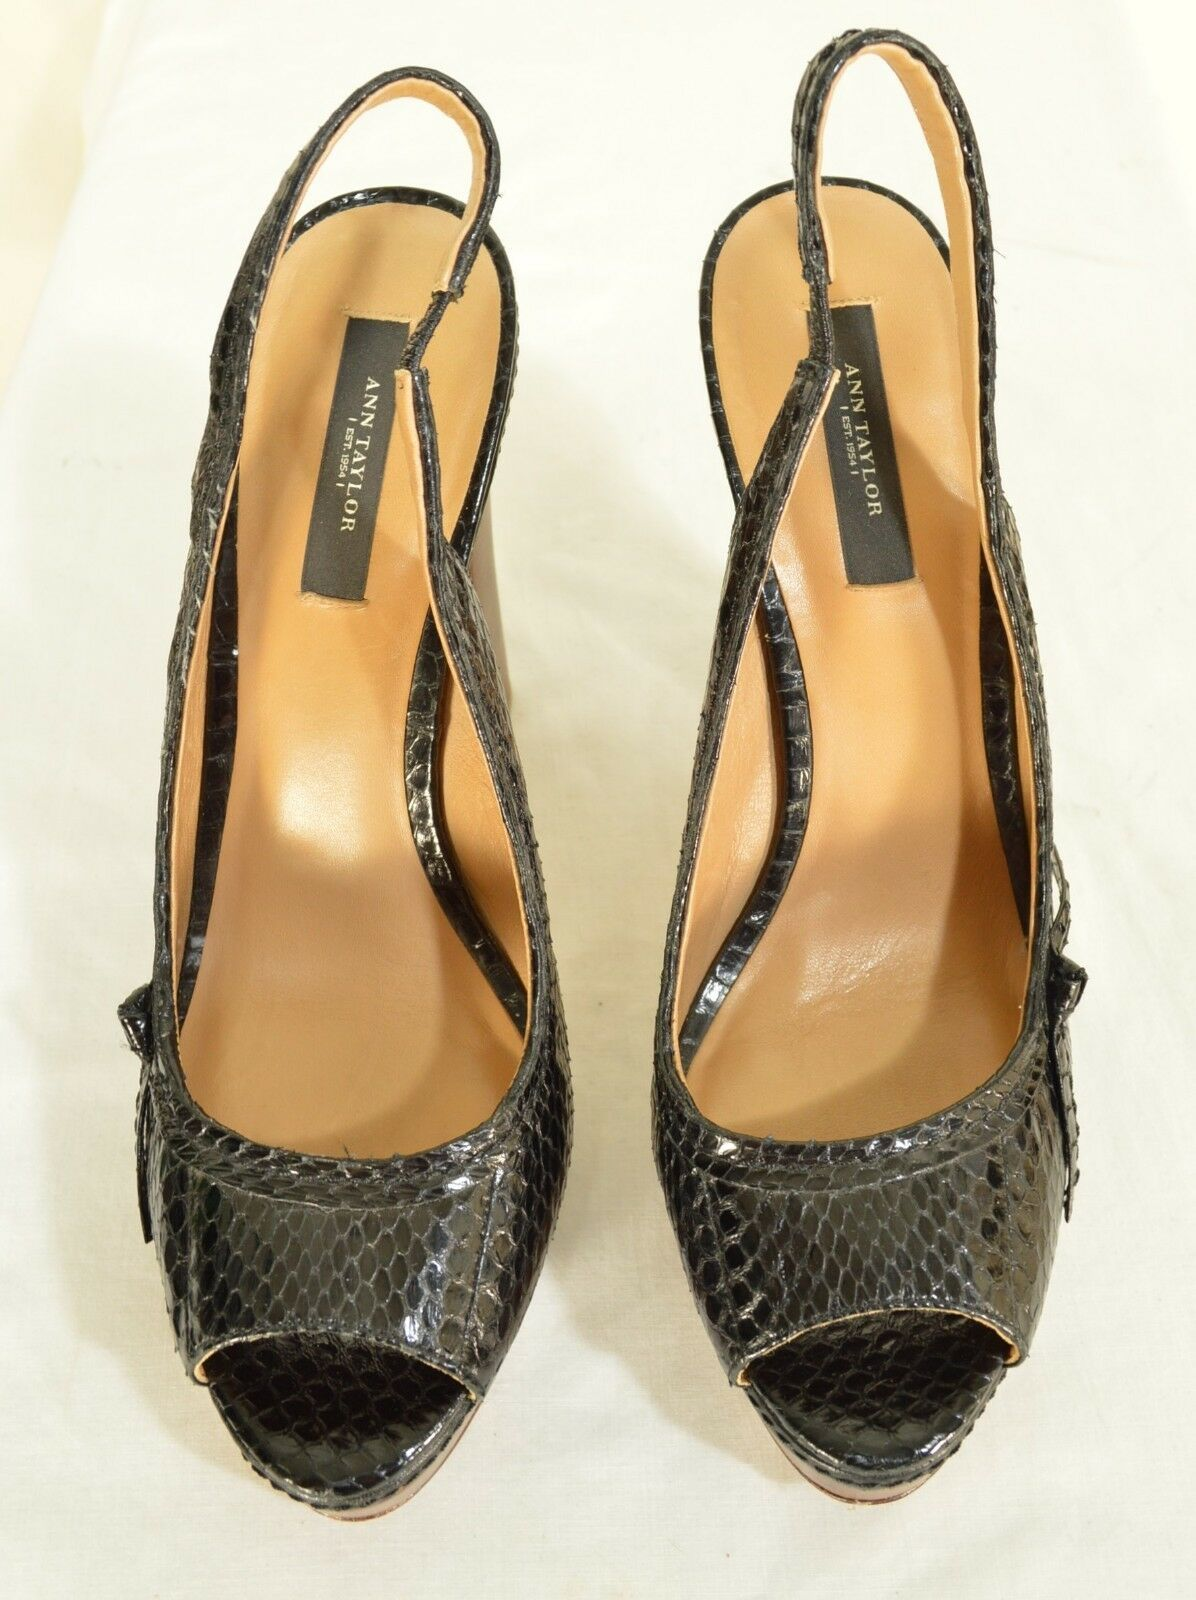 Ann Taylor shoes heels 9M platform black leather snakeskin high chic career image 11